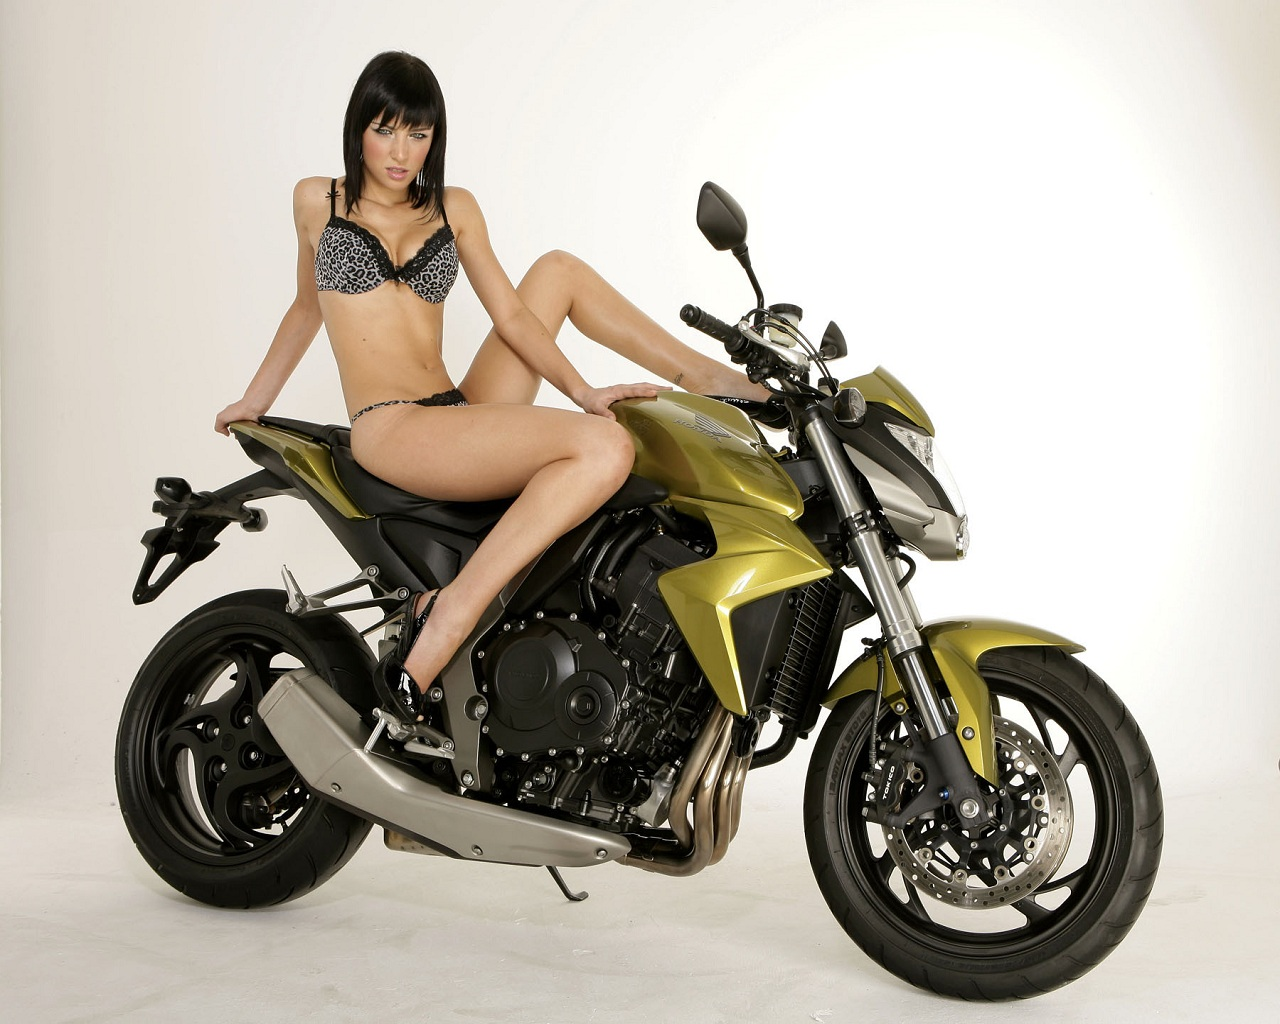 hot naked women on motor cycle